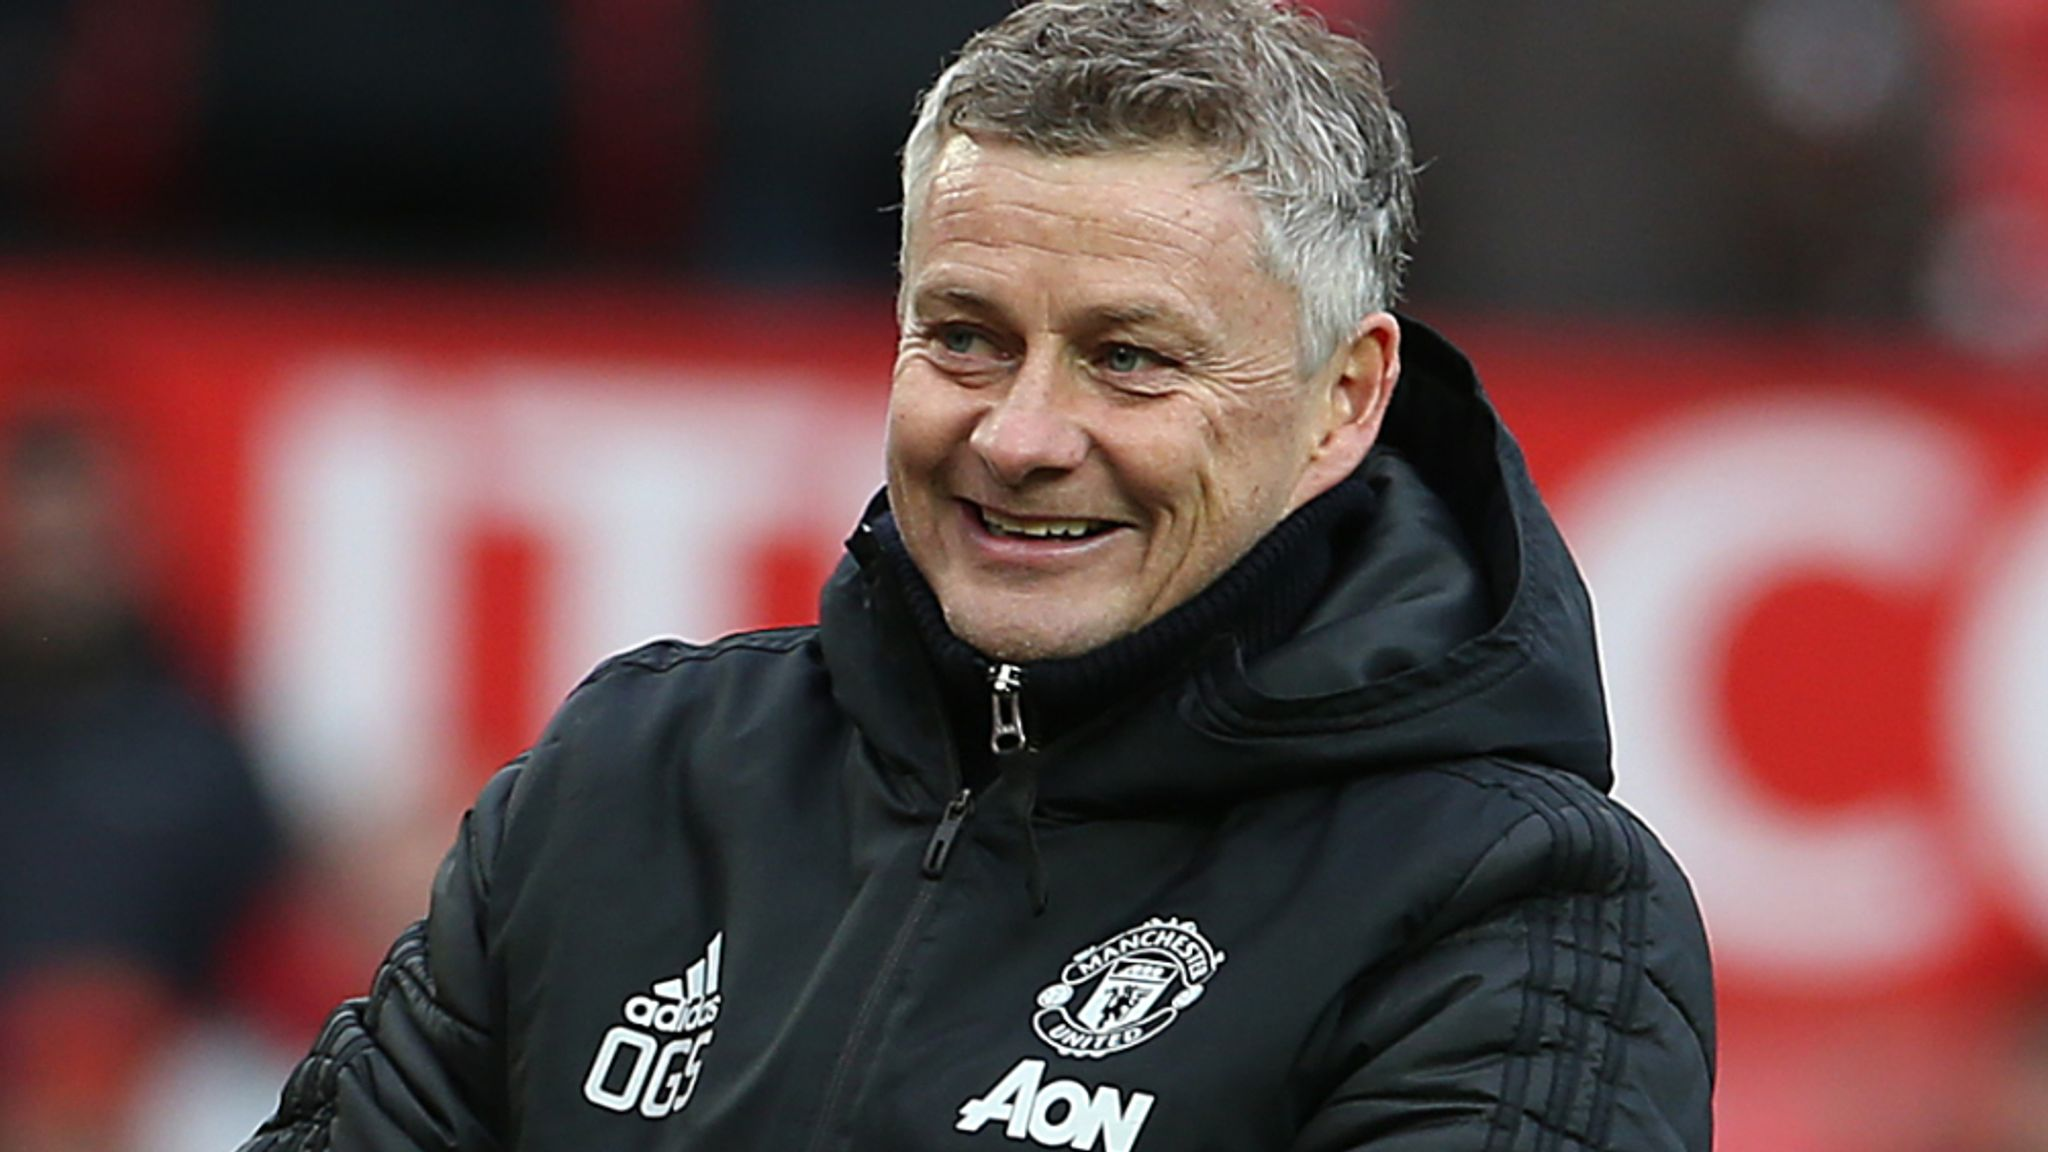 Victory at Newcastle gives Ole Gunnar Solskjaer breathing space amid sack rumours